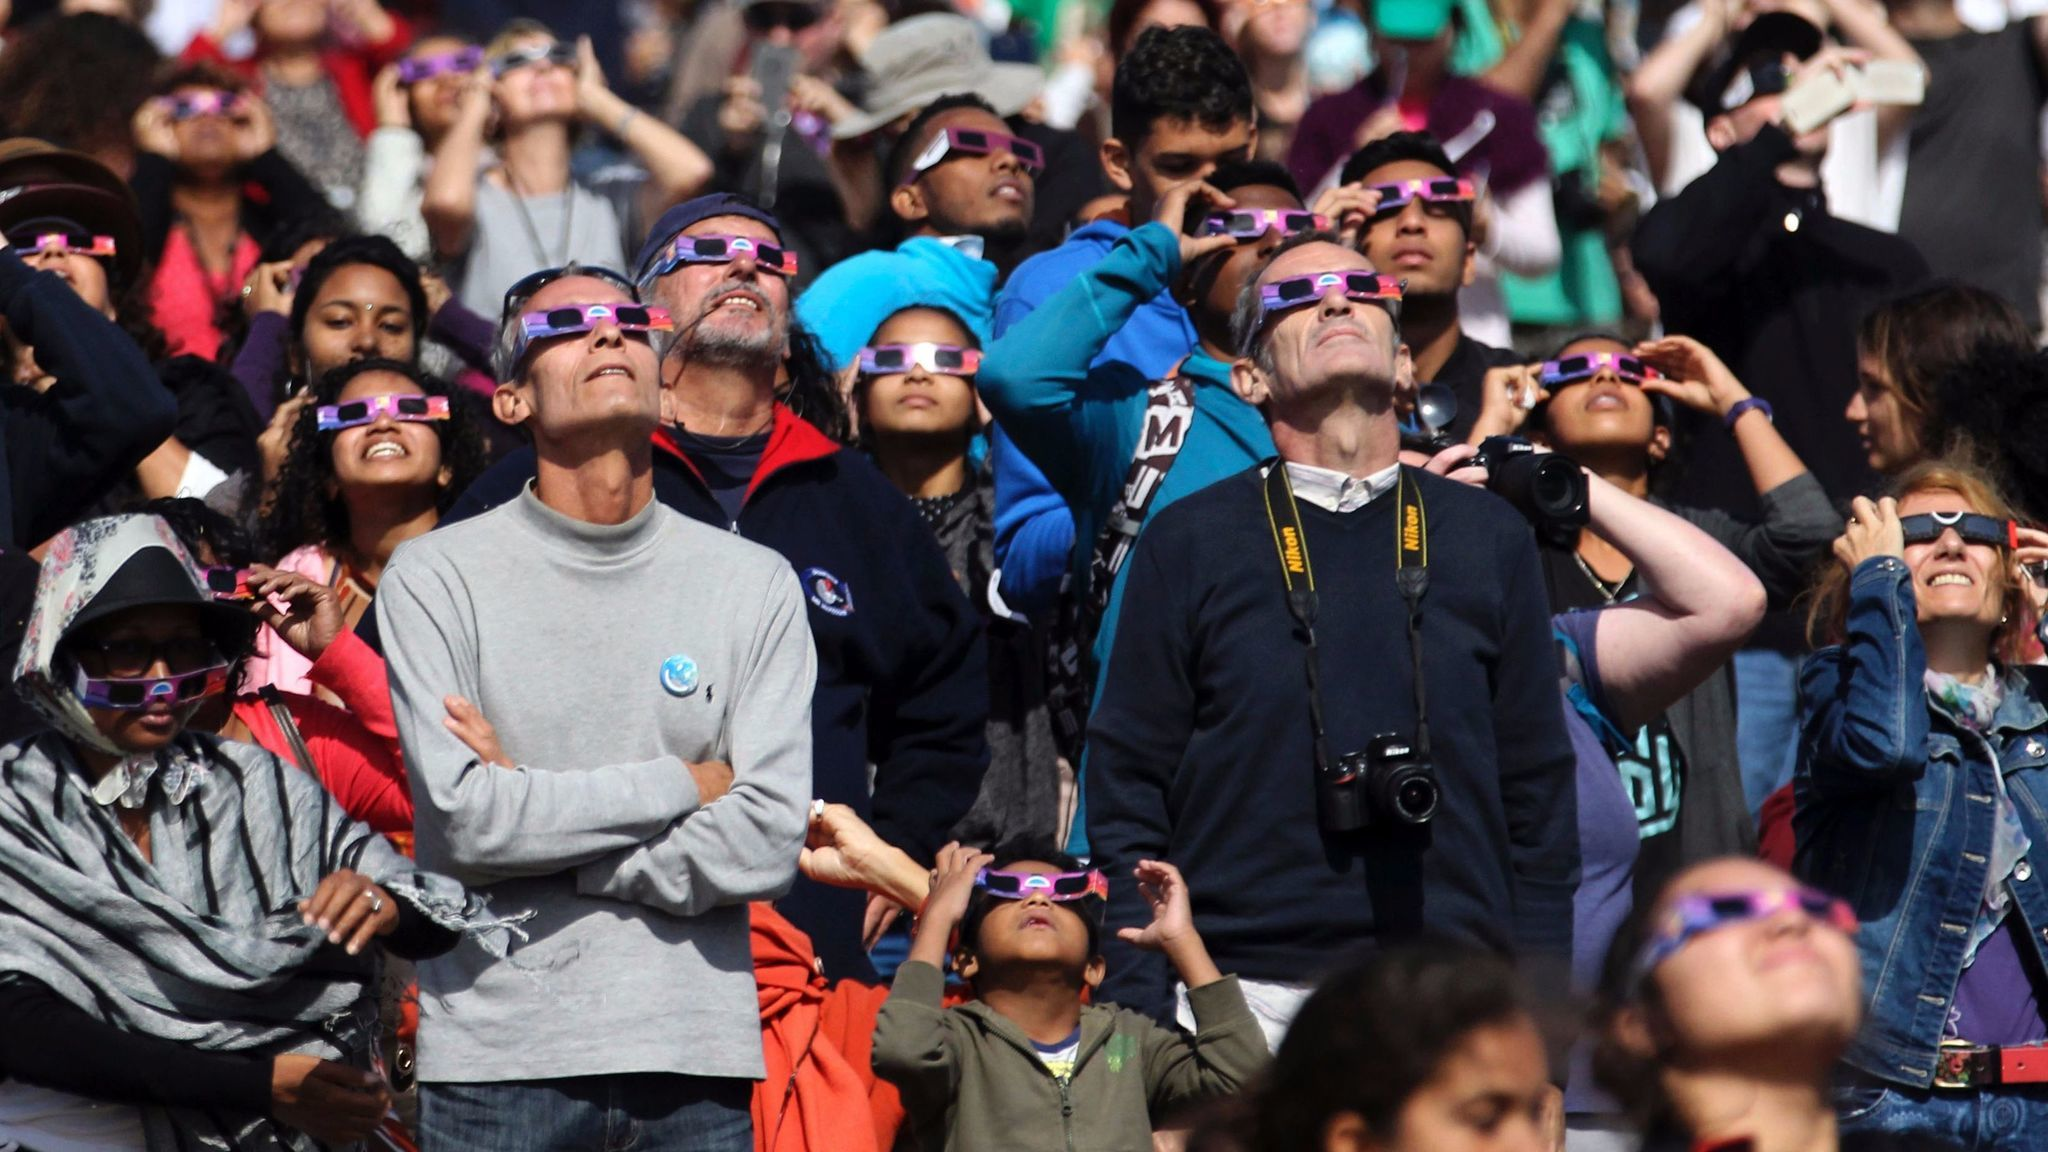 Eclipse enthusiasts say it's worth taking a moment to watch others watch an eclipse.